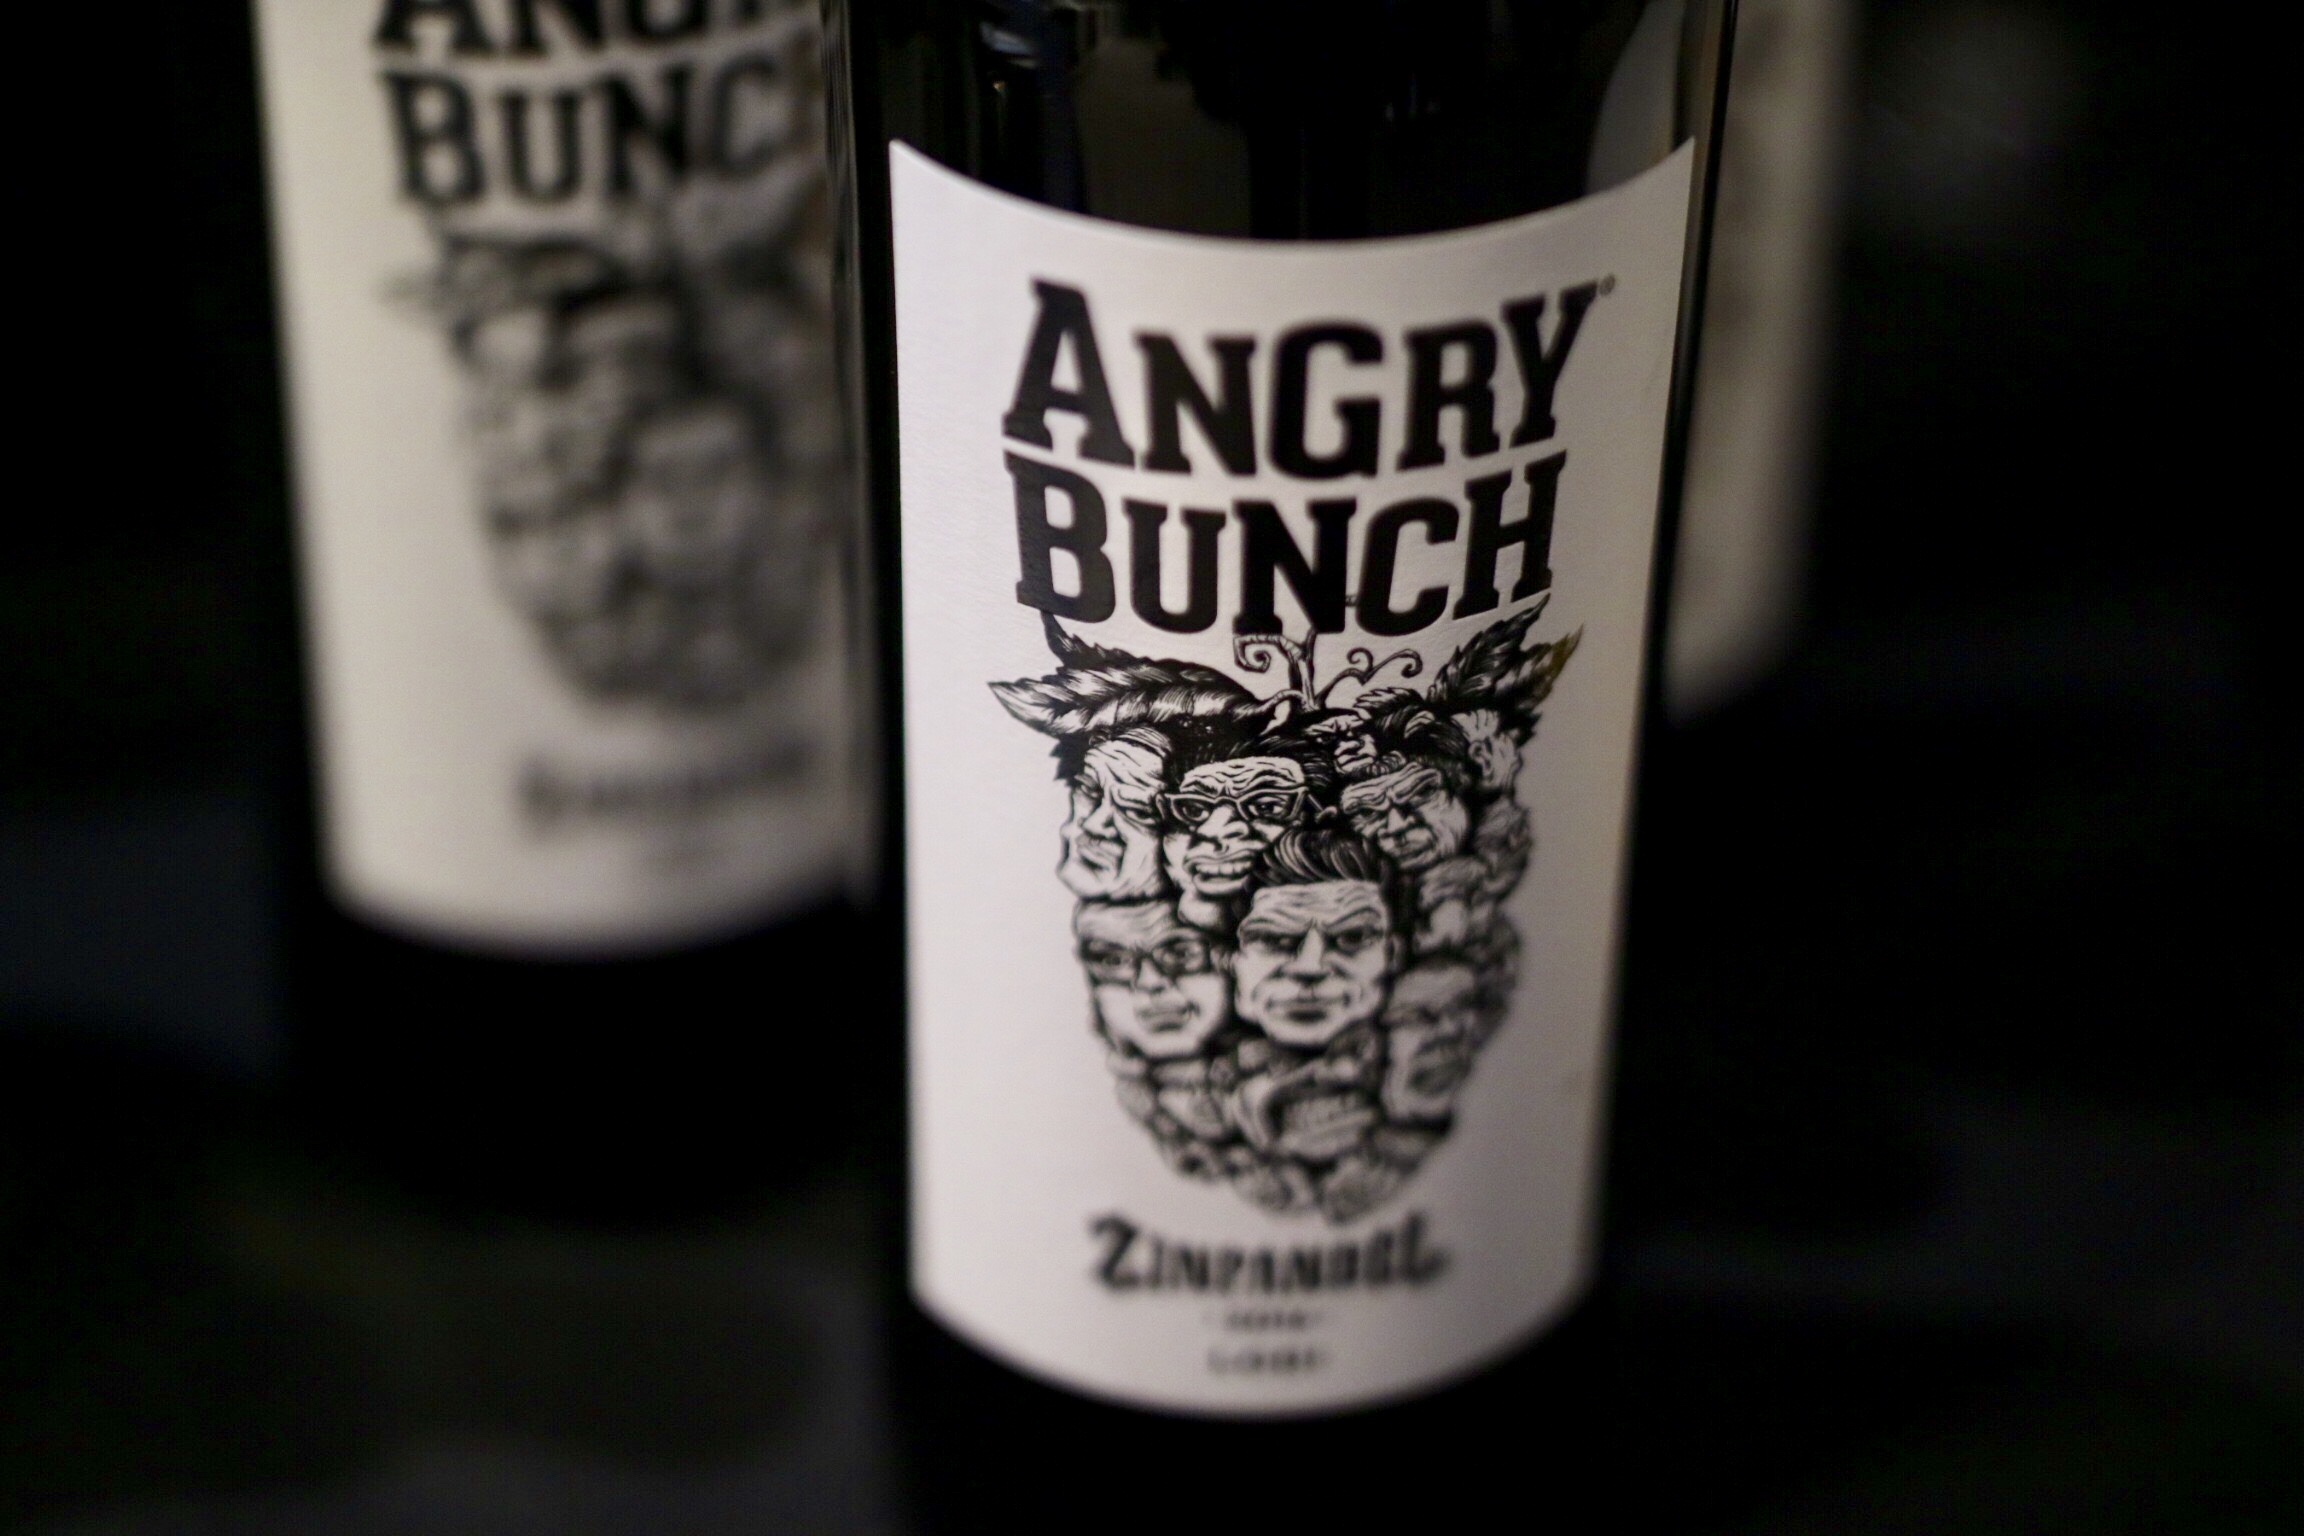 Angry Bunch Zinfandel 2016